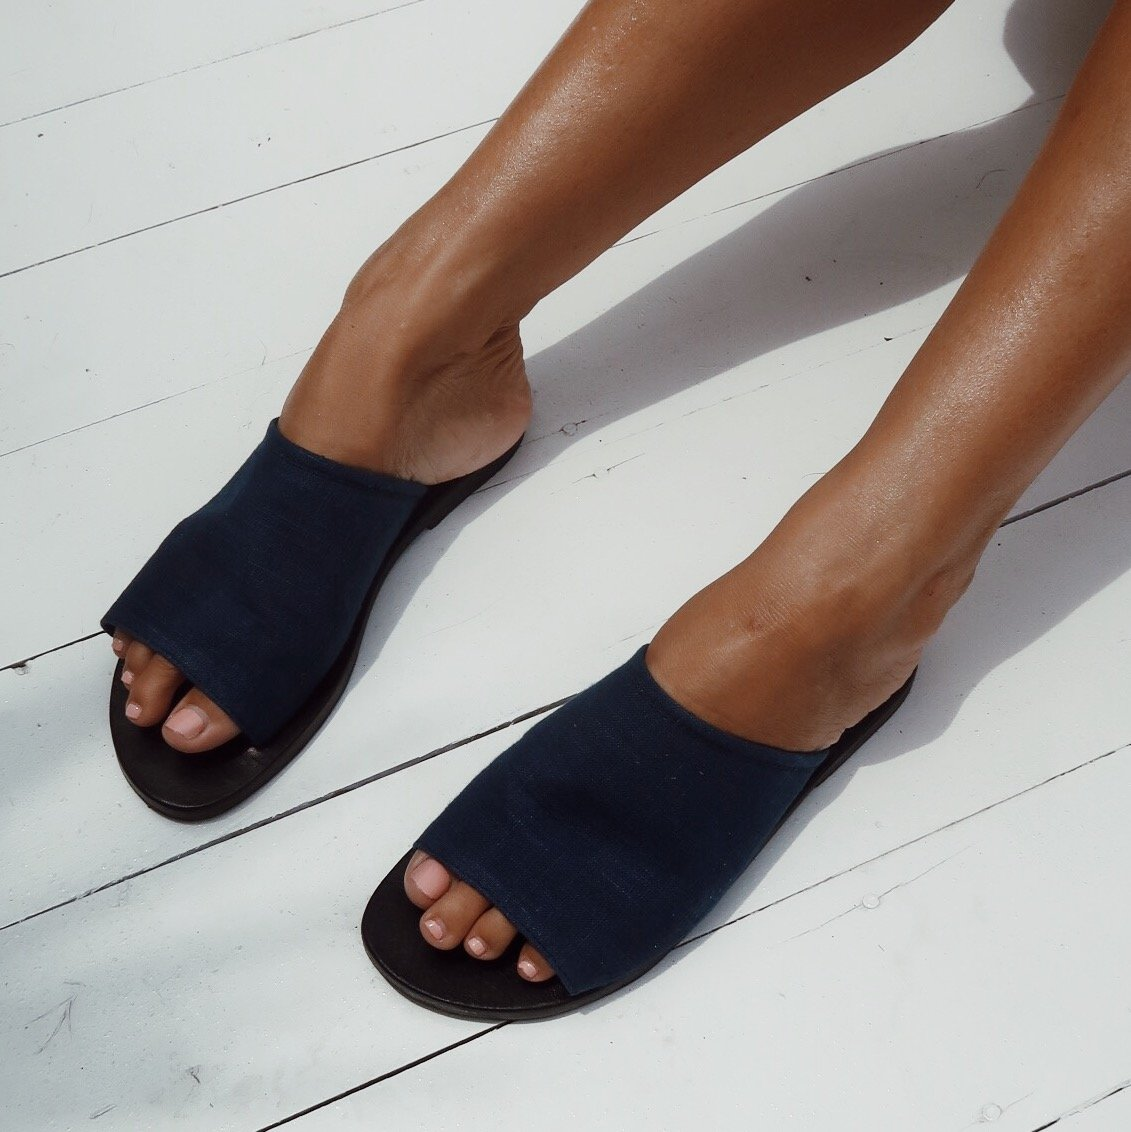 Susan Sandals in Organic Dyed Indigo Blue Colour by La Luna Rose